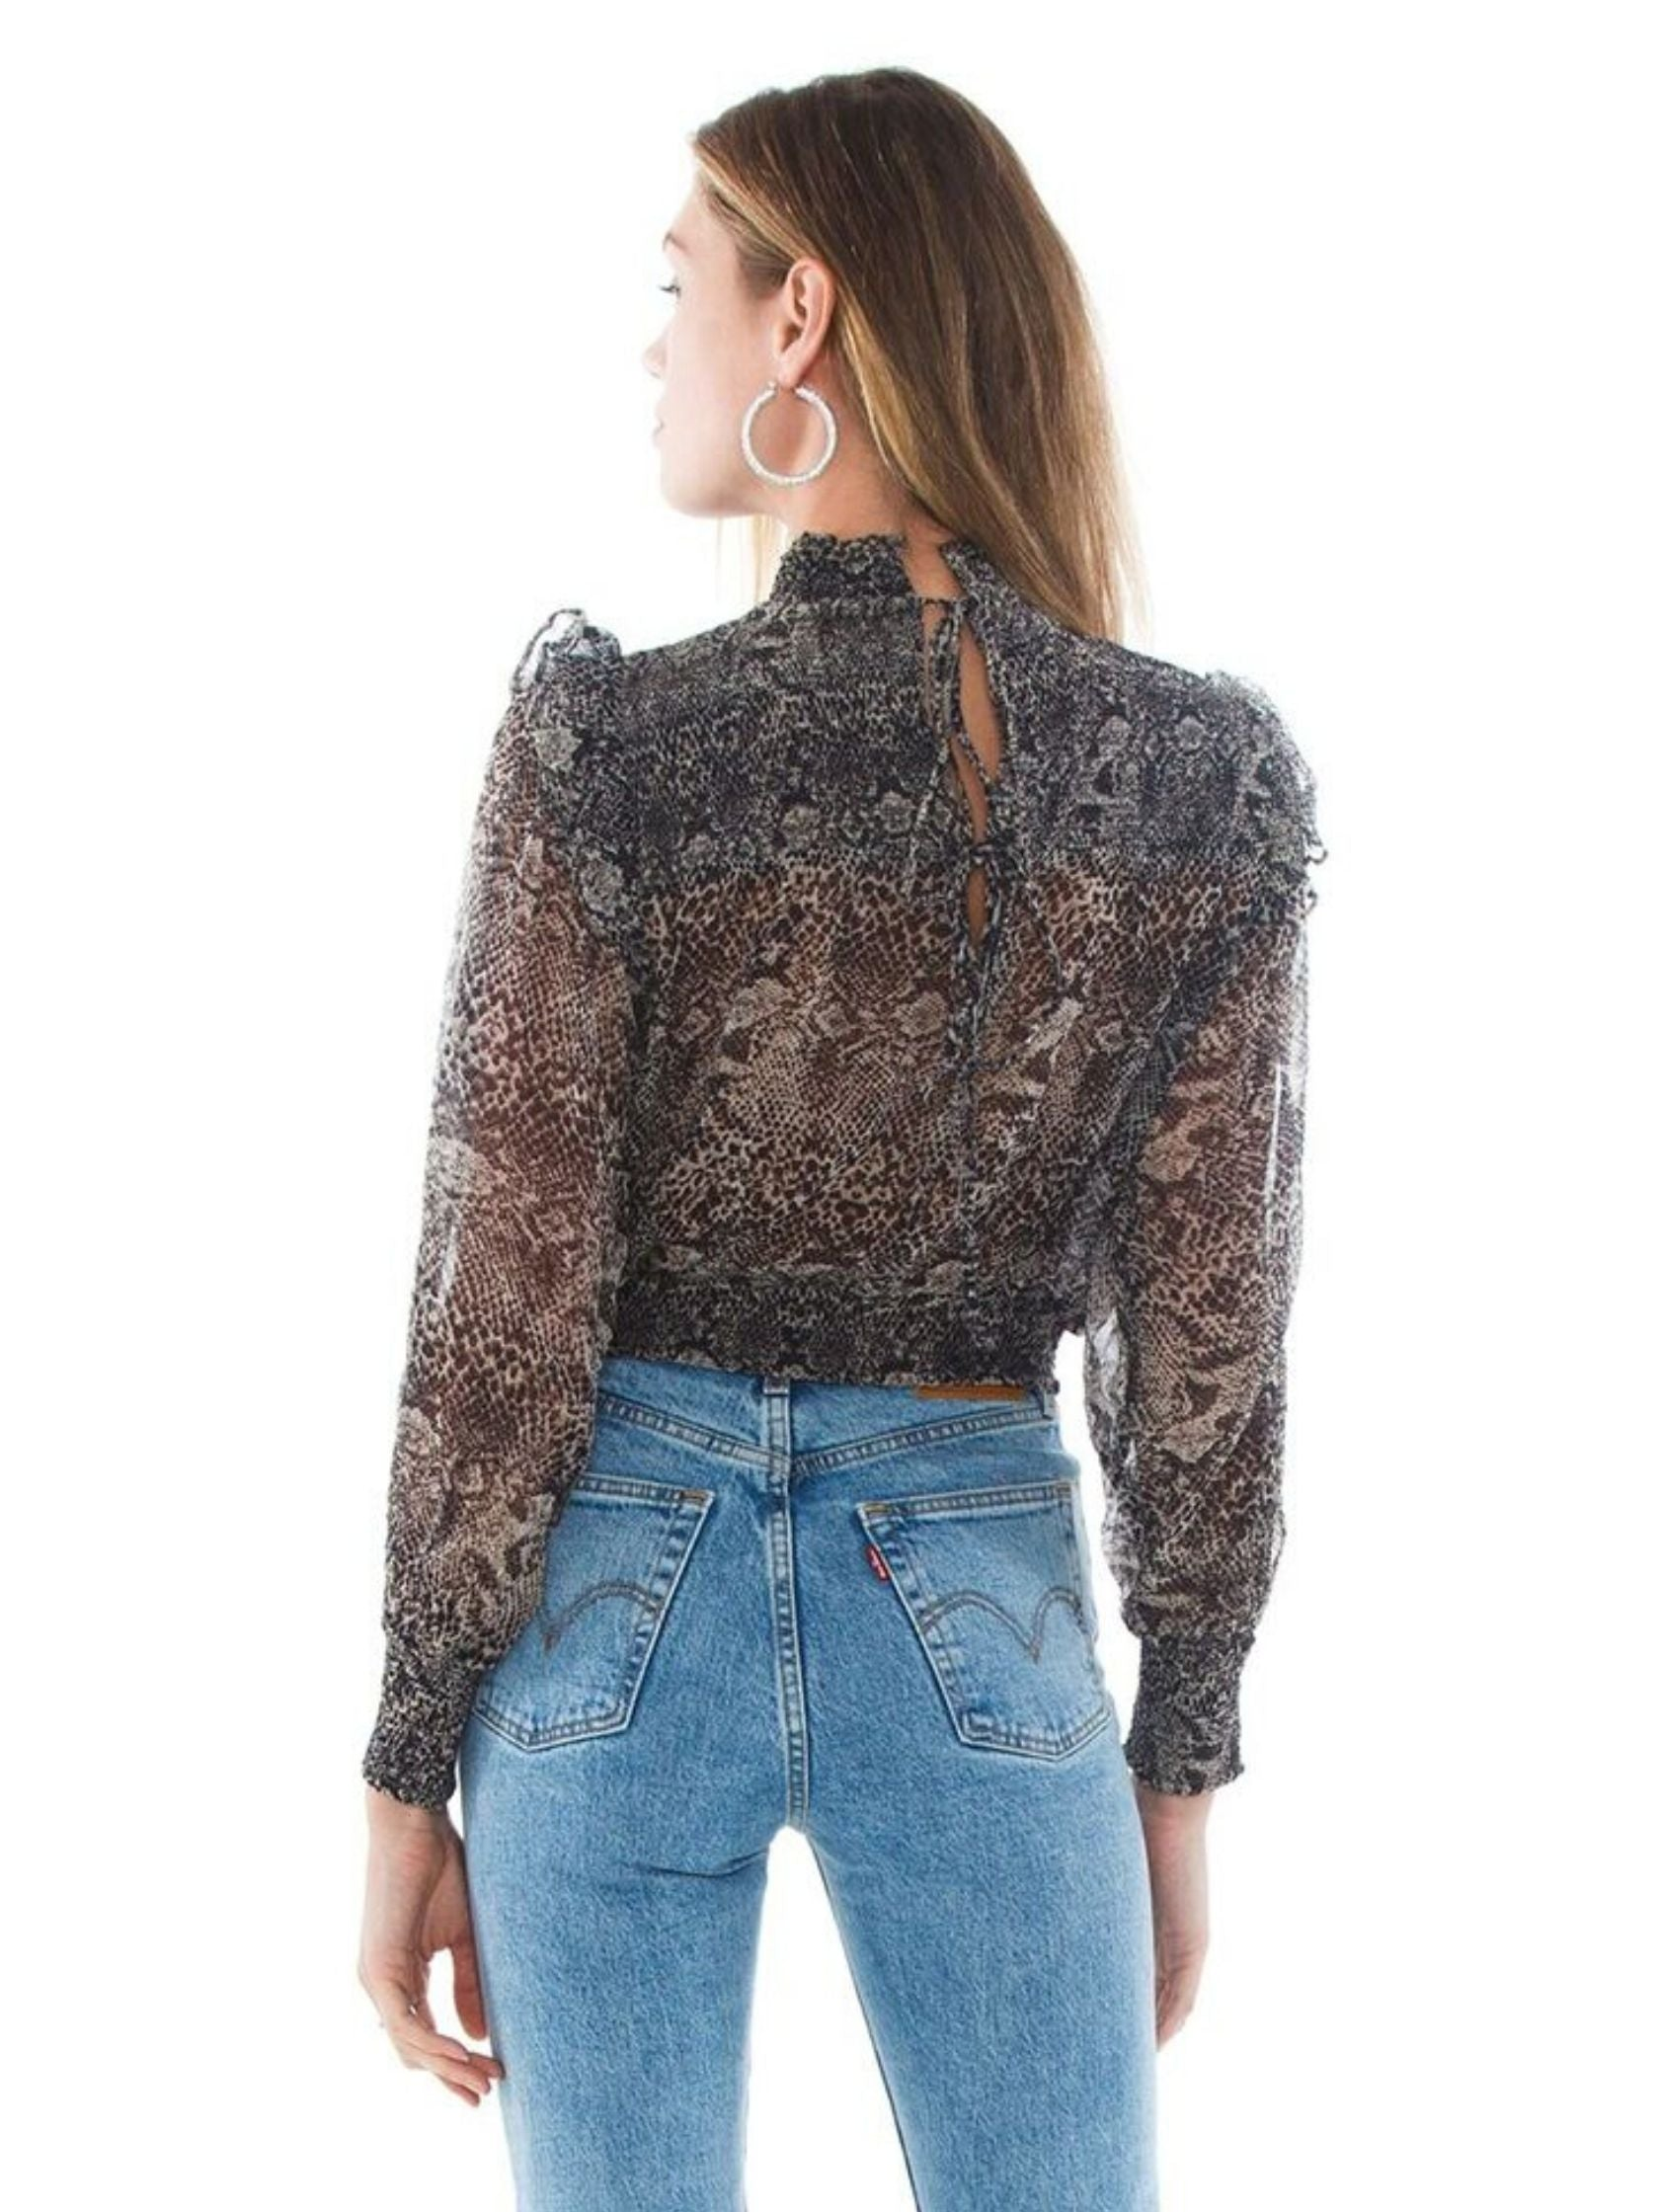 Women outfit in a top rental from Free People called Roma Blouse